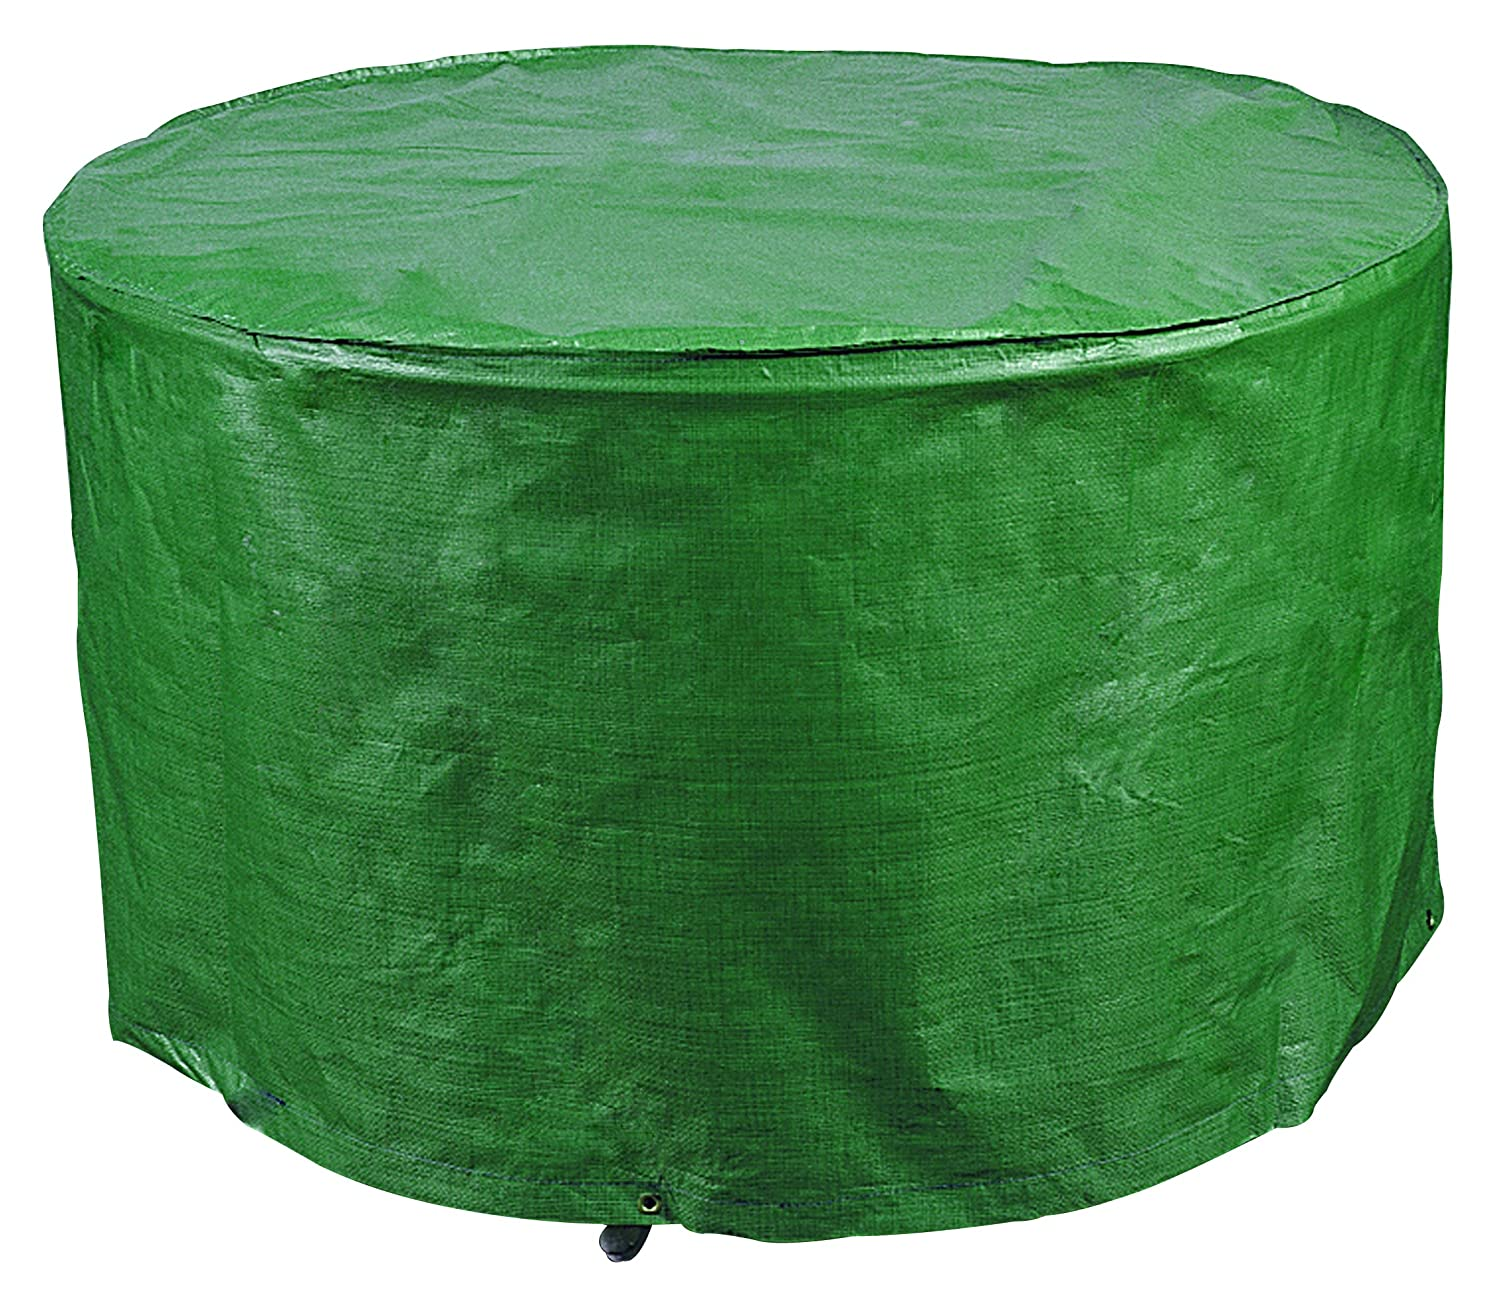 Bosmere D540 STORM BLACK 4 Seat Circular Table Cover Bosmere Products Ltd